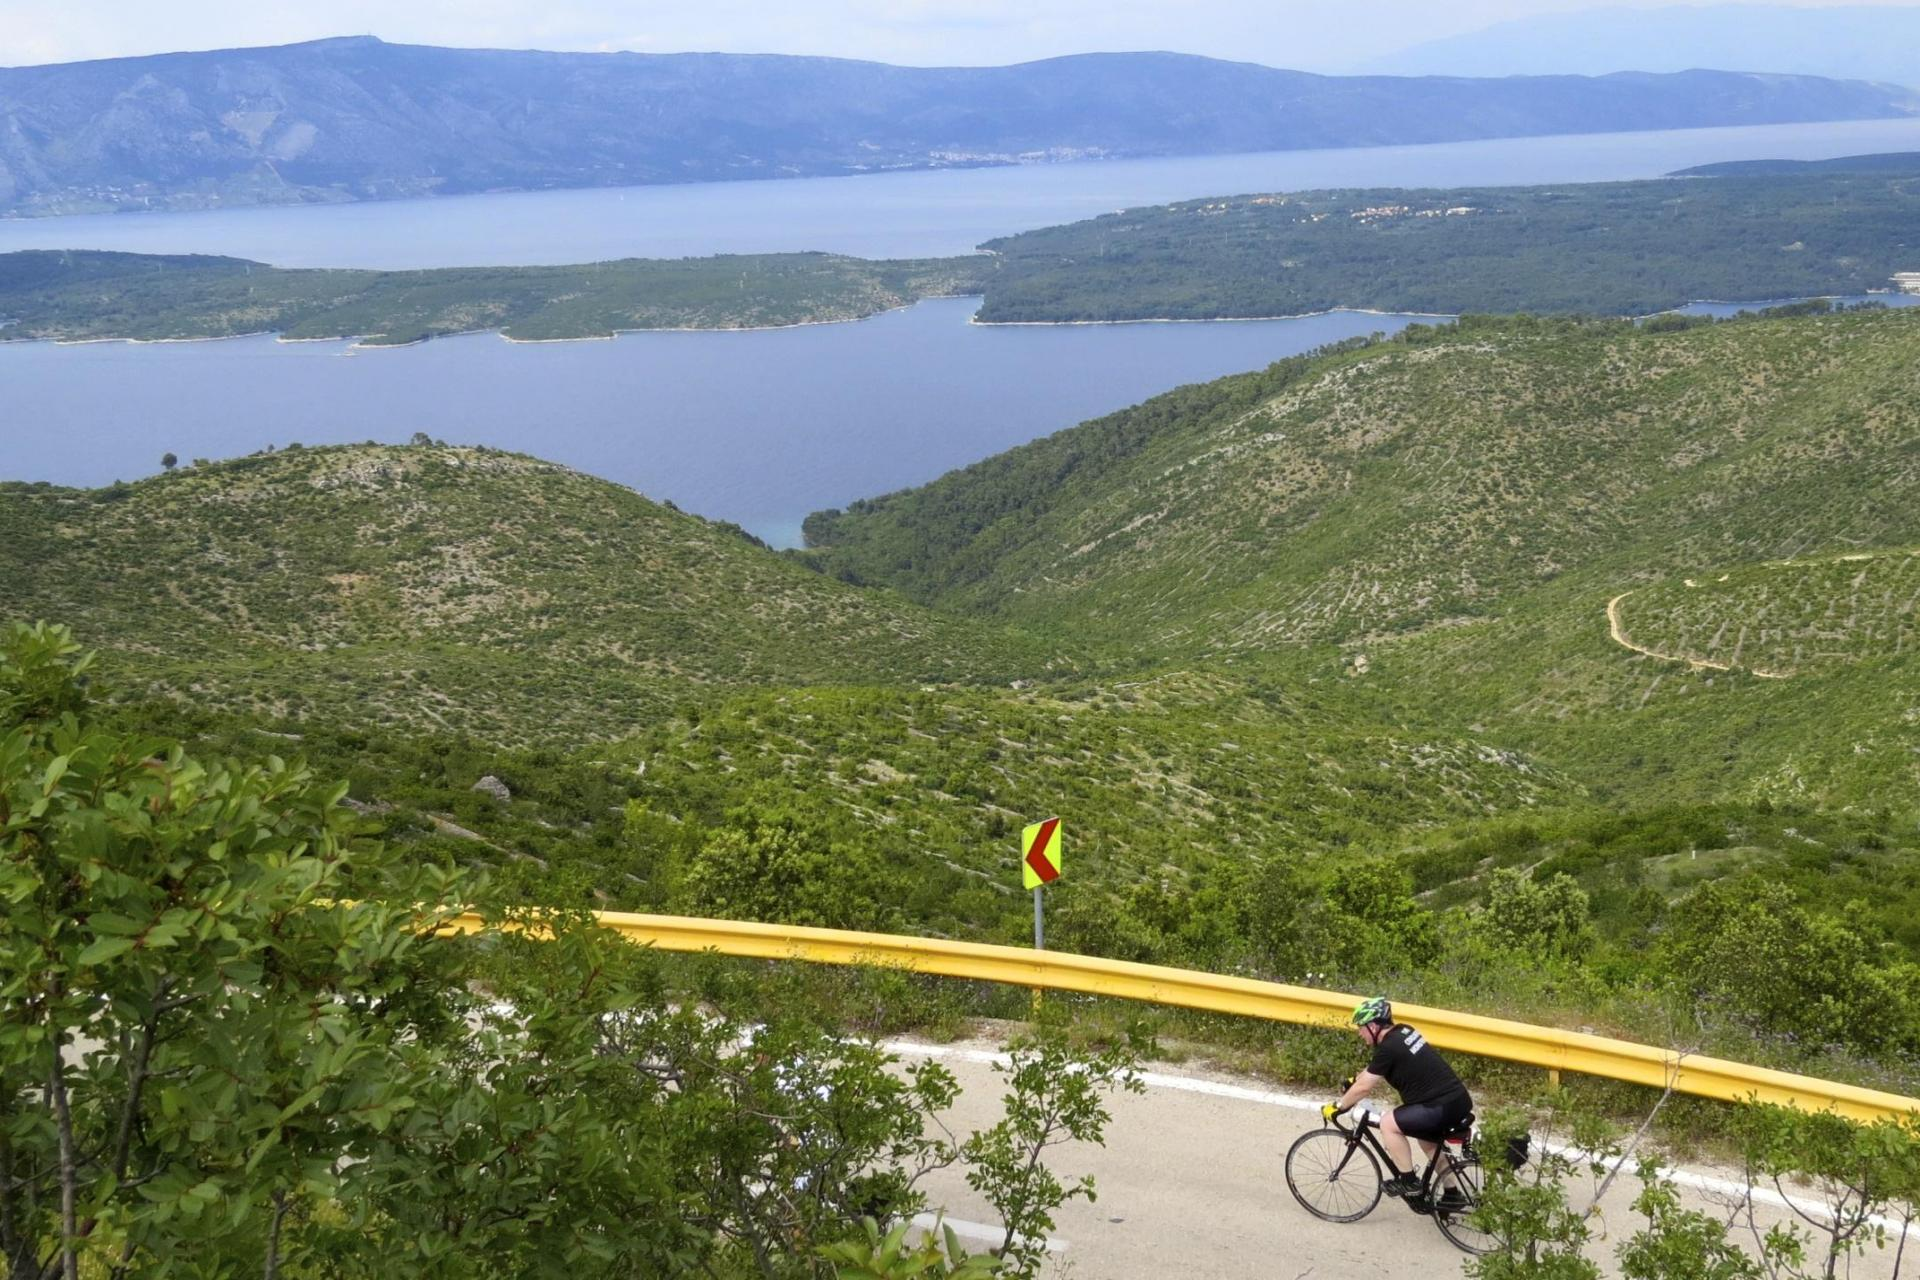 Self guided cycling tour of Croatia's coast and islands